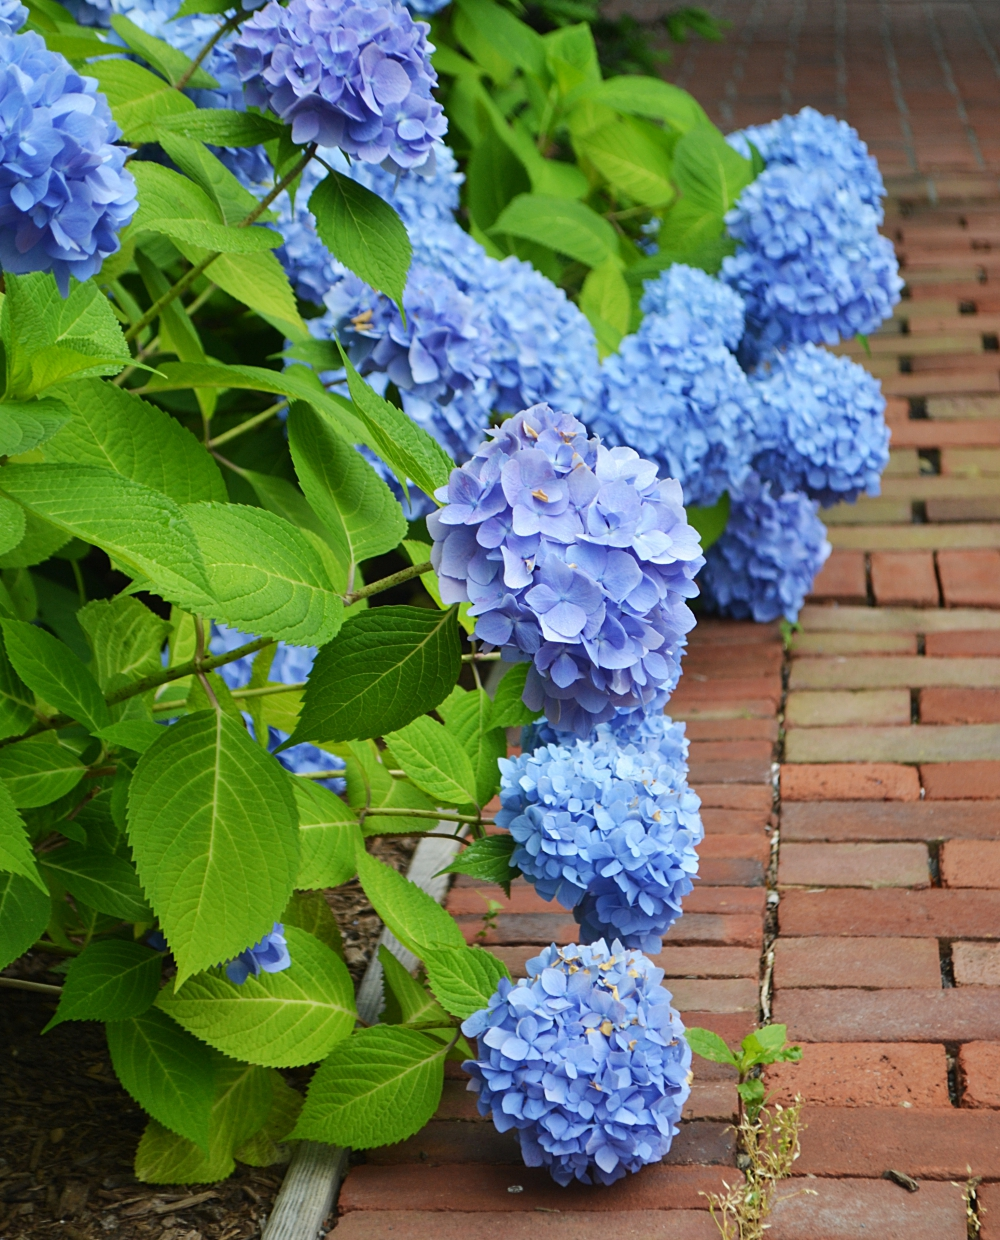 Blue Flowers 5 Popular Varieties For The Garden New England Today